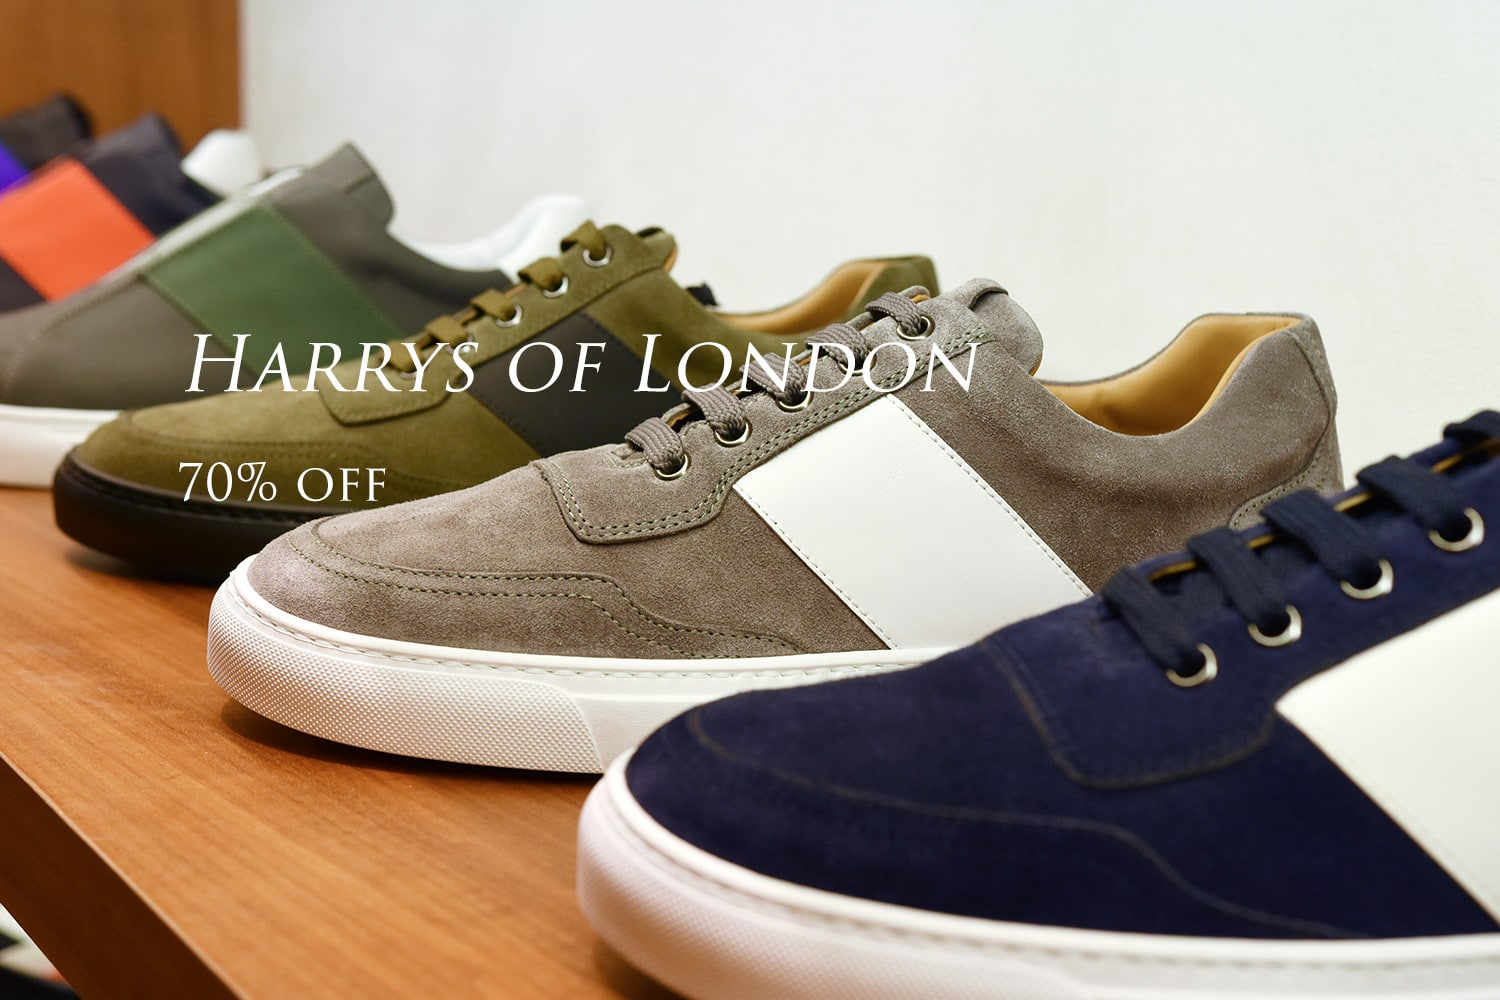 Harrys of London